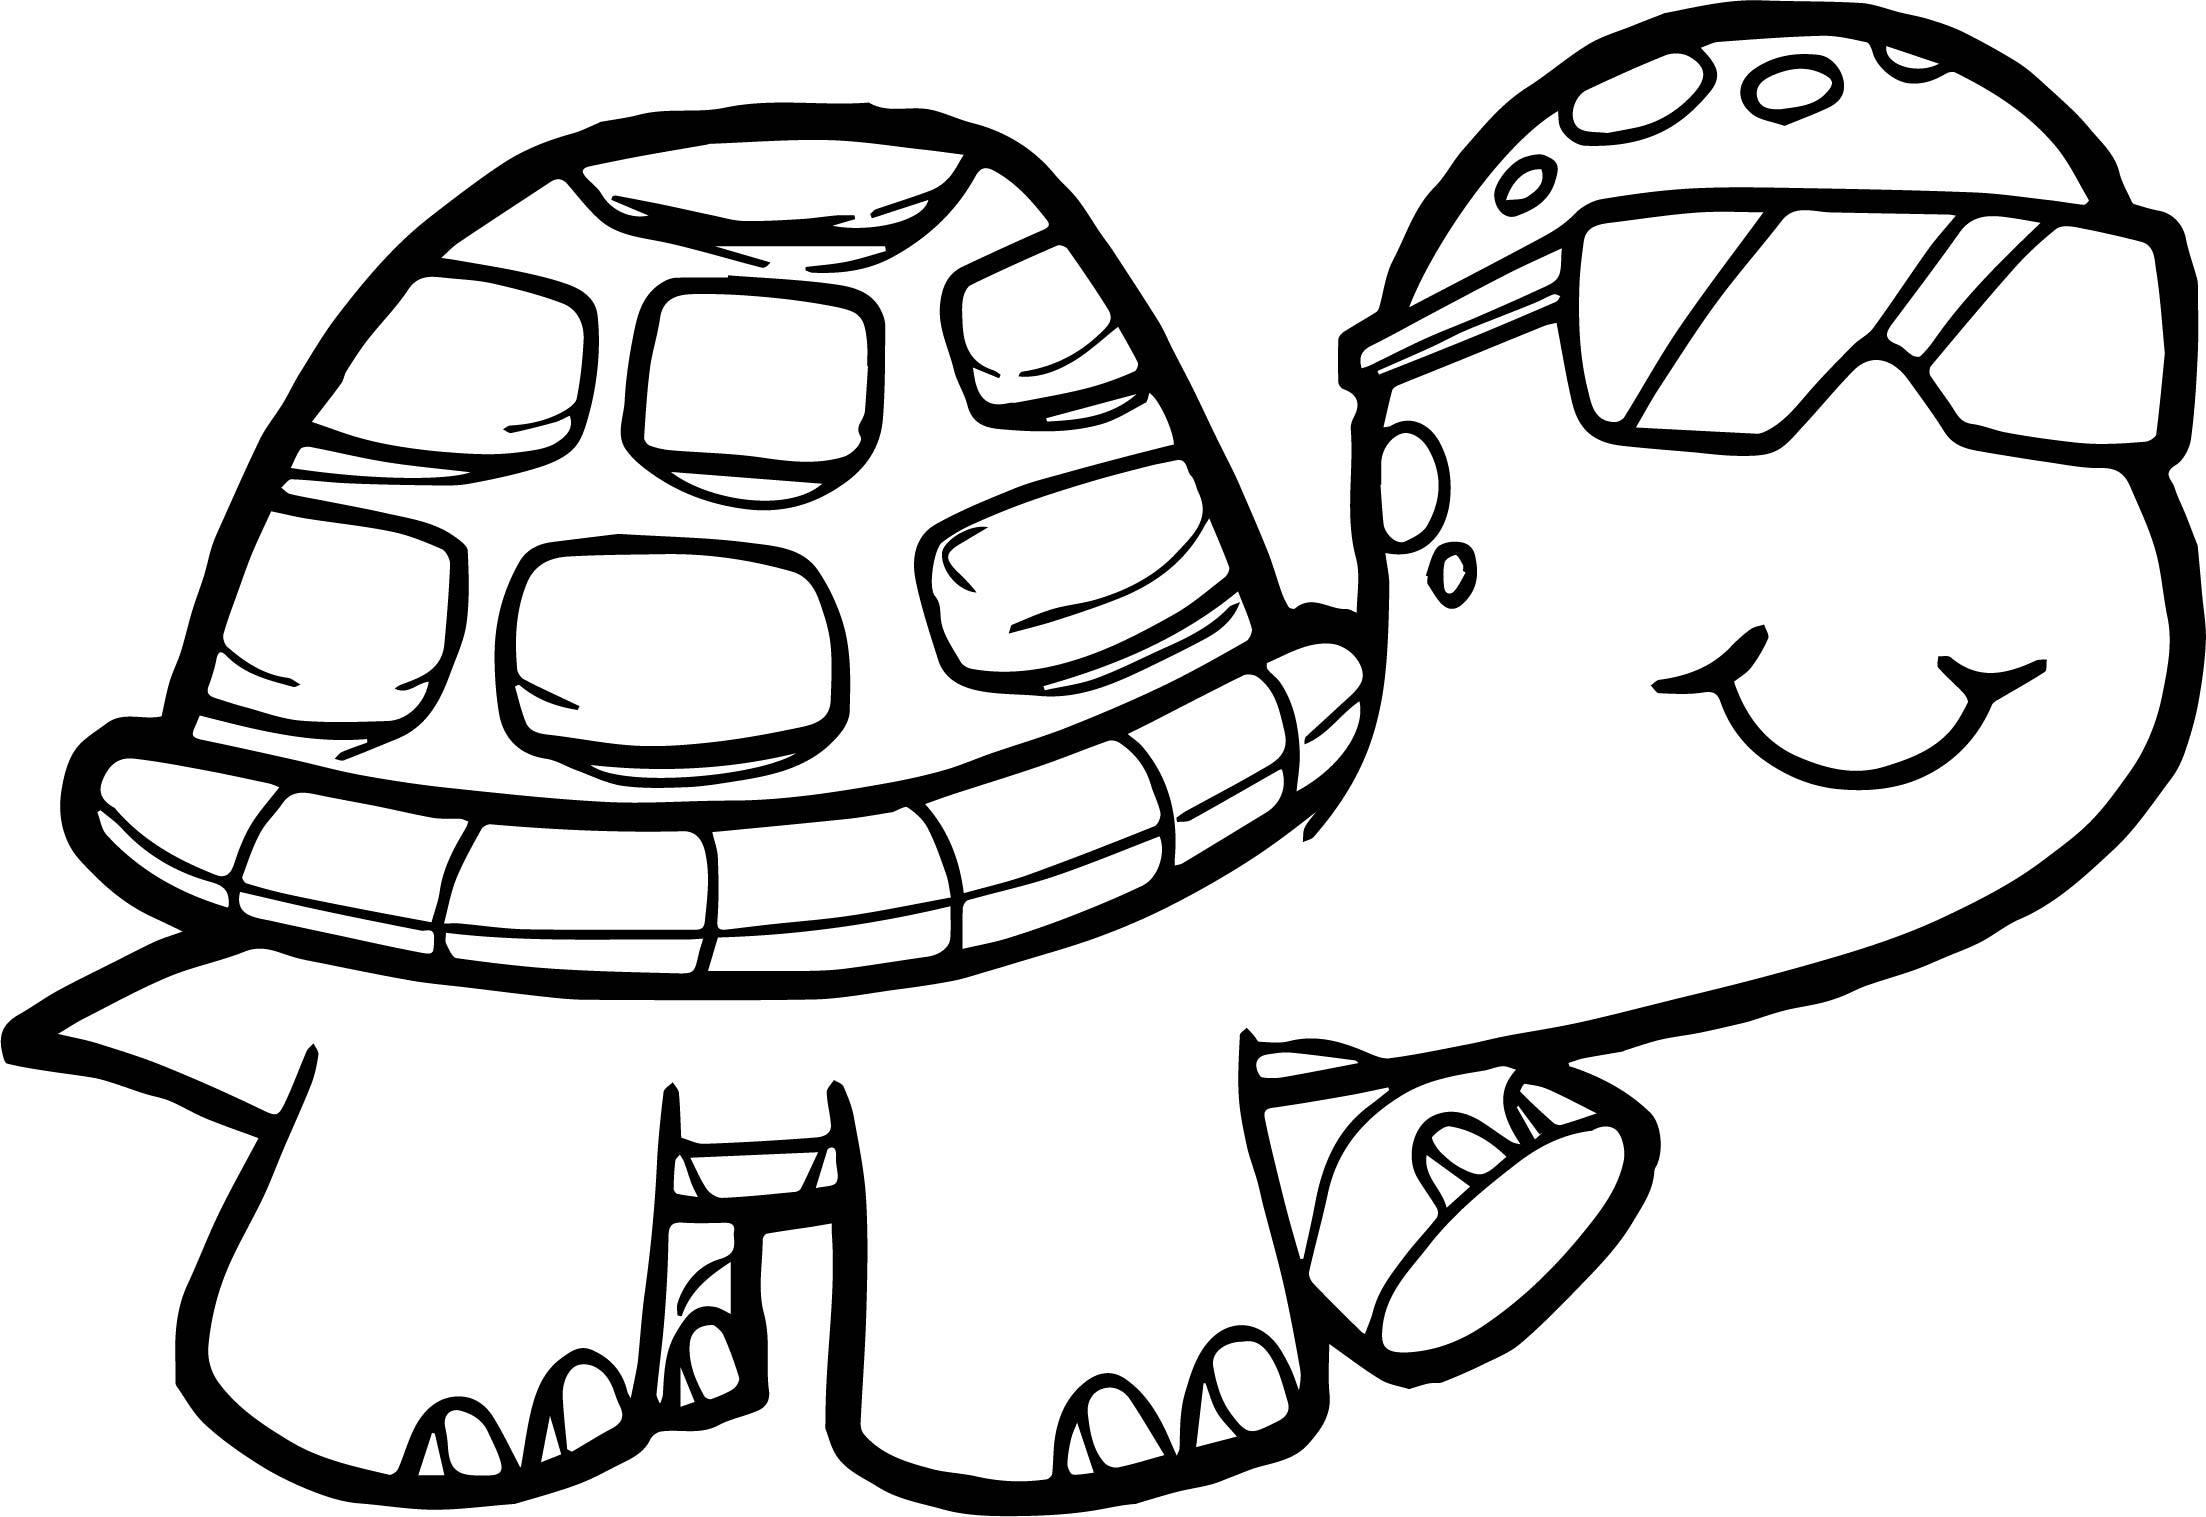 Turtle Coloring Pages Gorgeous Glasses Tortoise Turtle Coloring Page  Wecoloringpage 2017